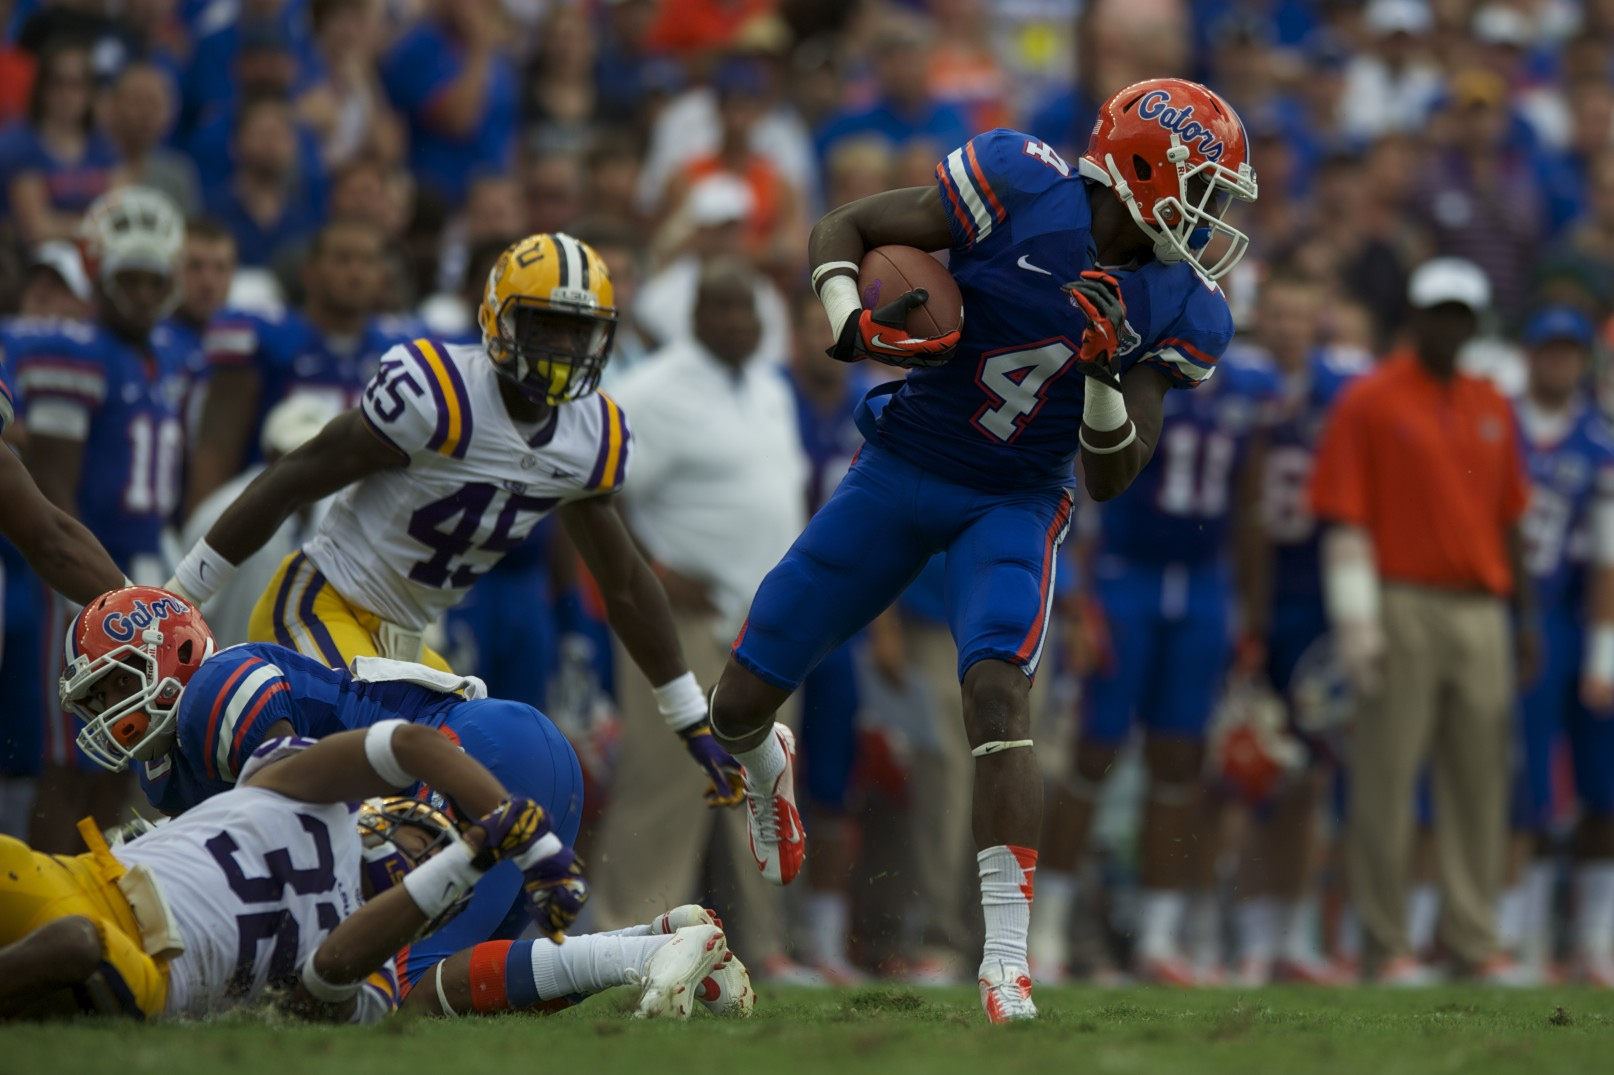 Florida wide reciever Andre Debose